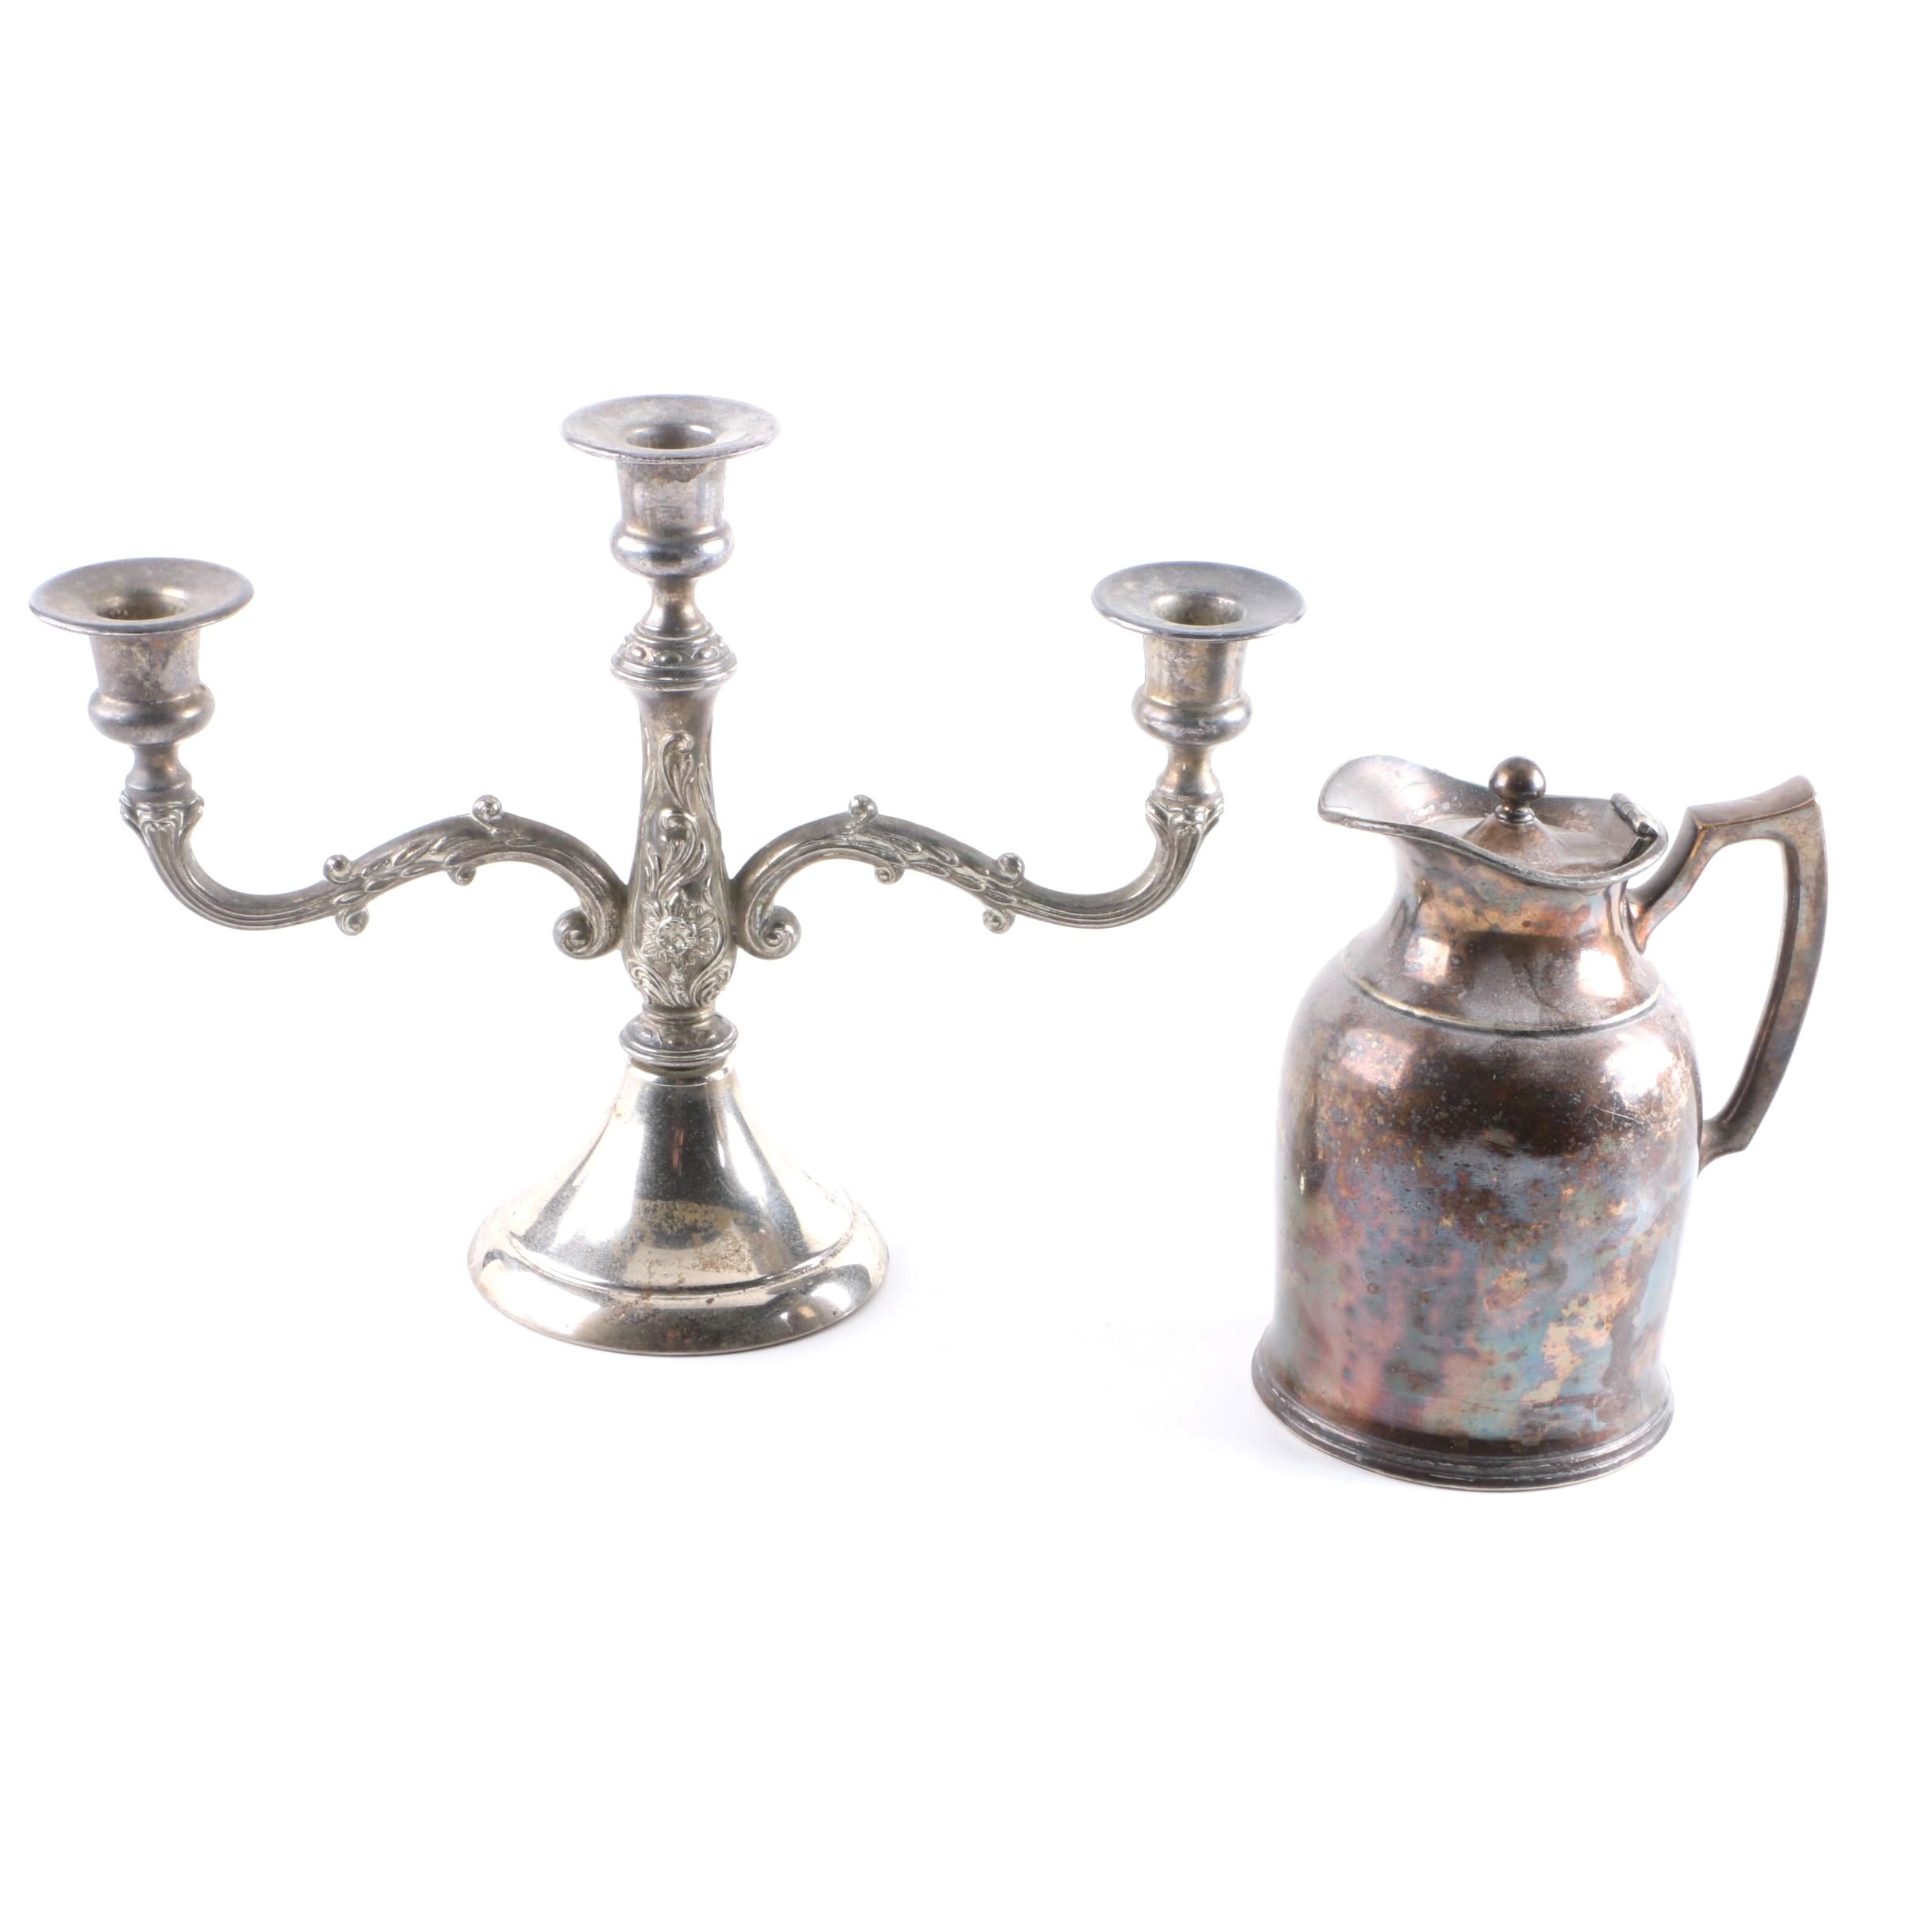 Stanley Insulated Carafe and Silver Tone Candelabra